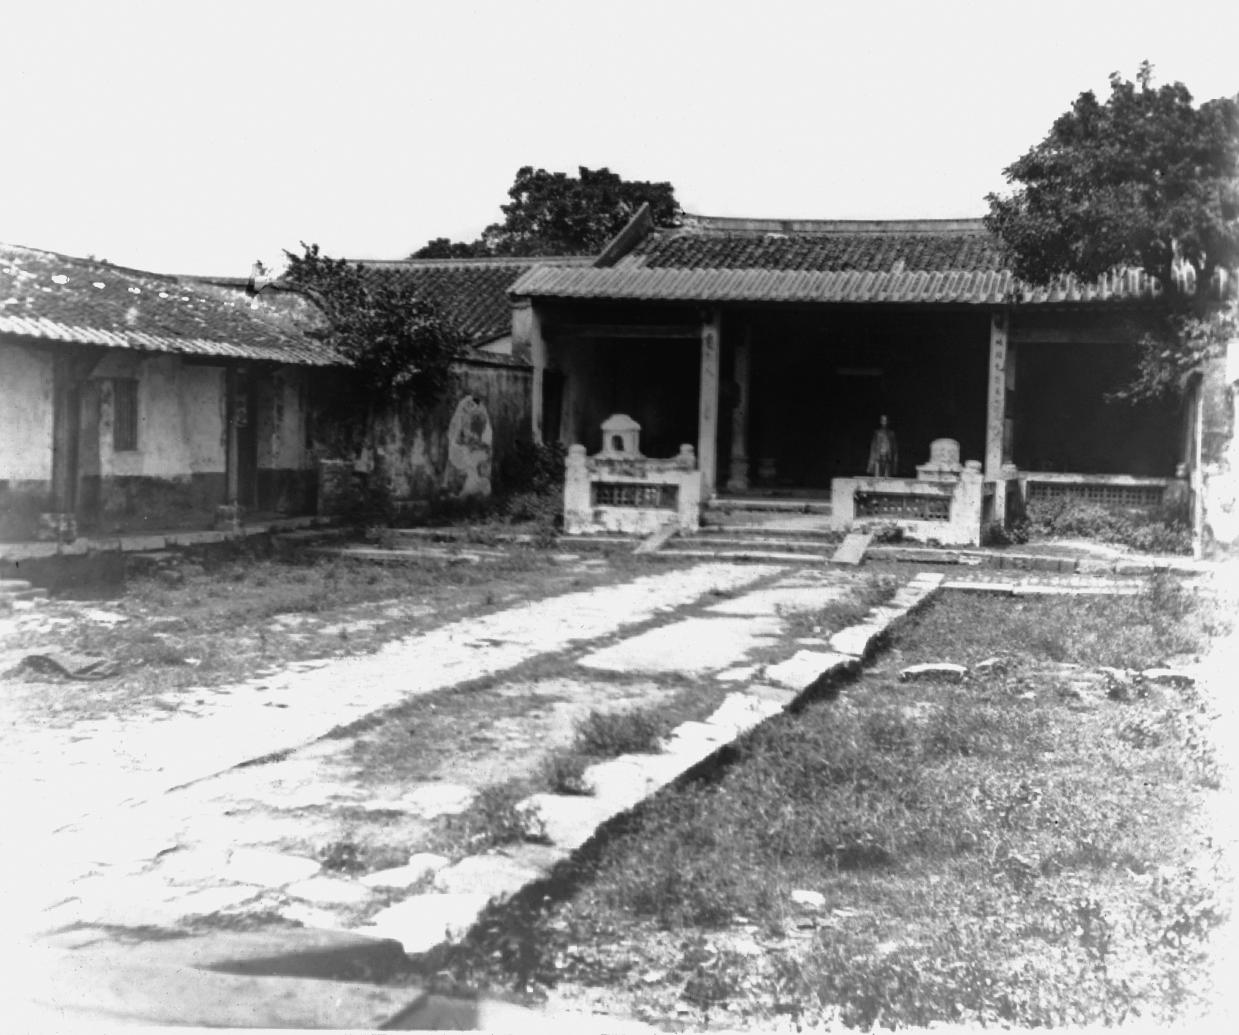 Yamen (Qing government) 衙門 official's headquarters.